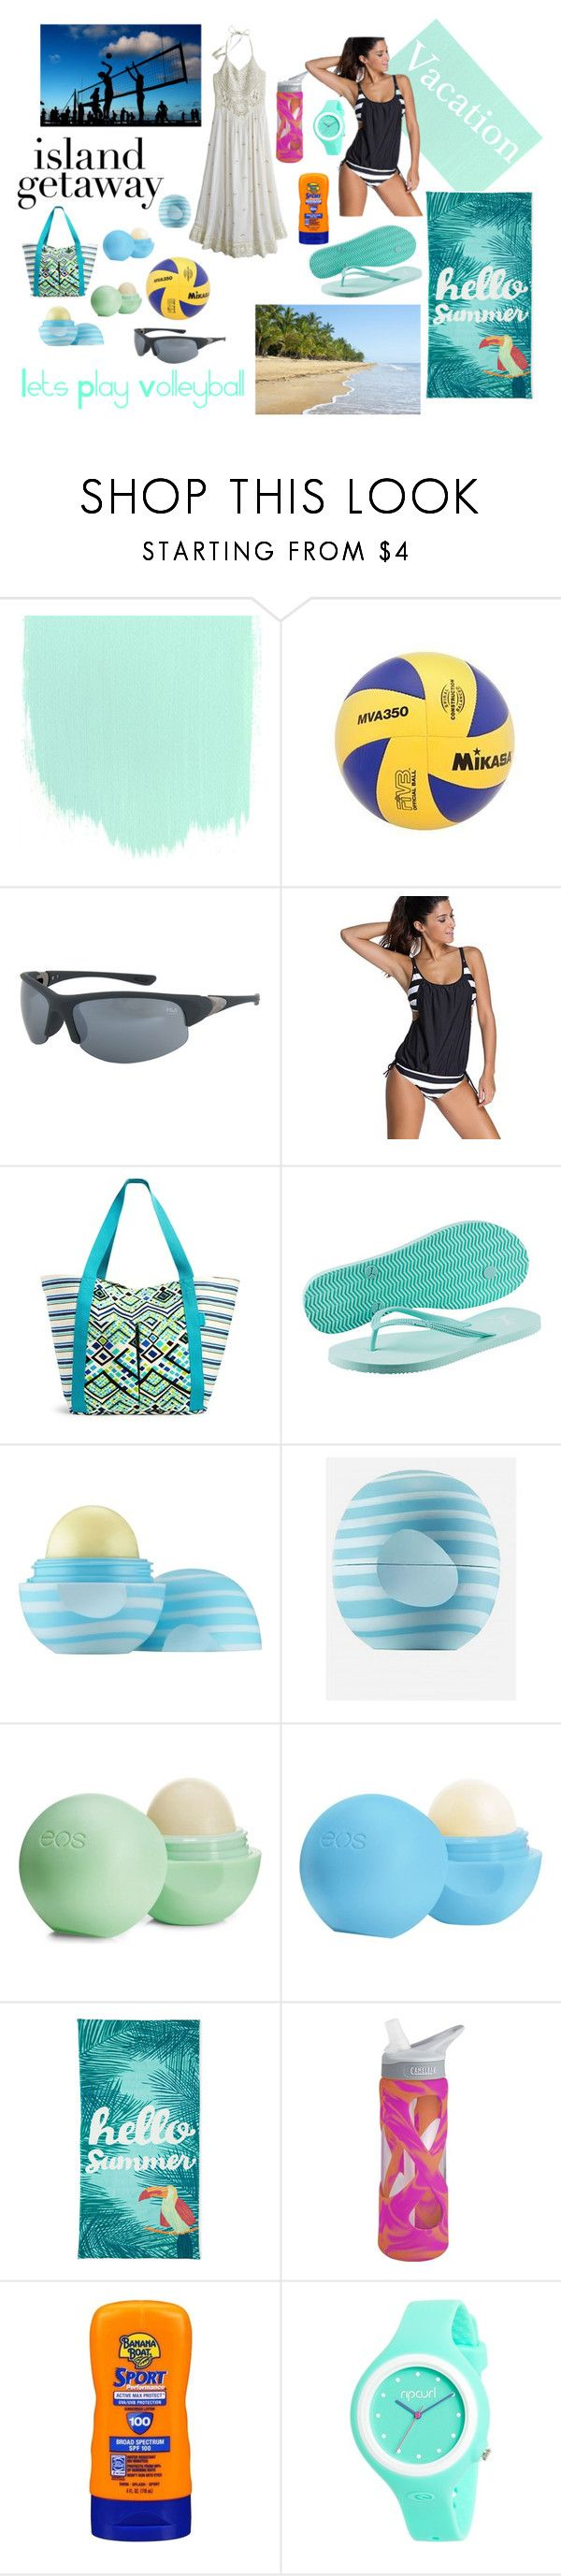 """""""Beach Volleyball"""" by designed-by-me ❤ liked on Polyvore featuring Mikasa, Vera Bradley, Puma, Eos, Outdoor Oasis, CamelBak, Banana Boat, Rip Curl, Calypso St. Barth and Summer"""